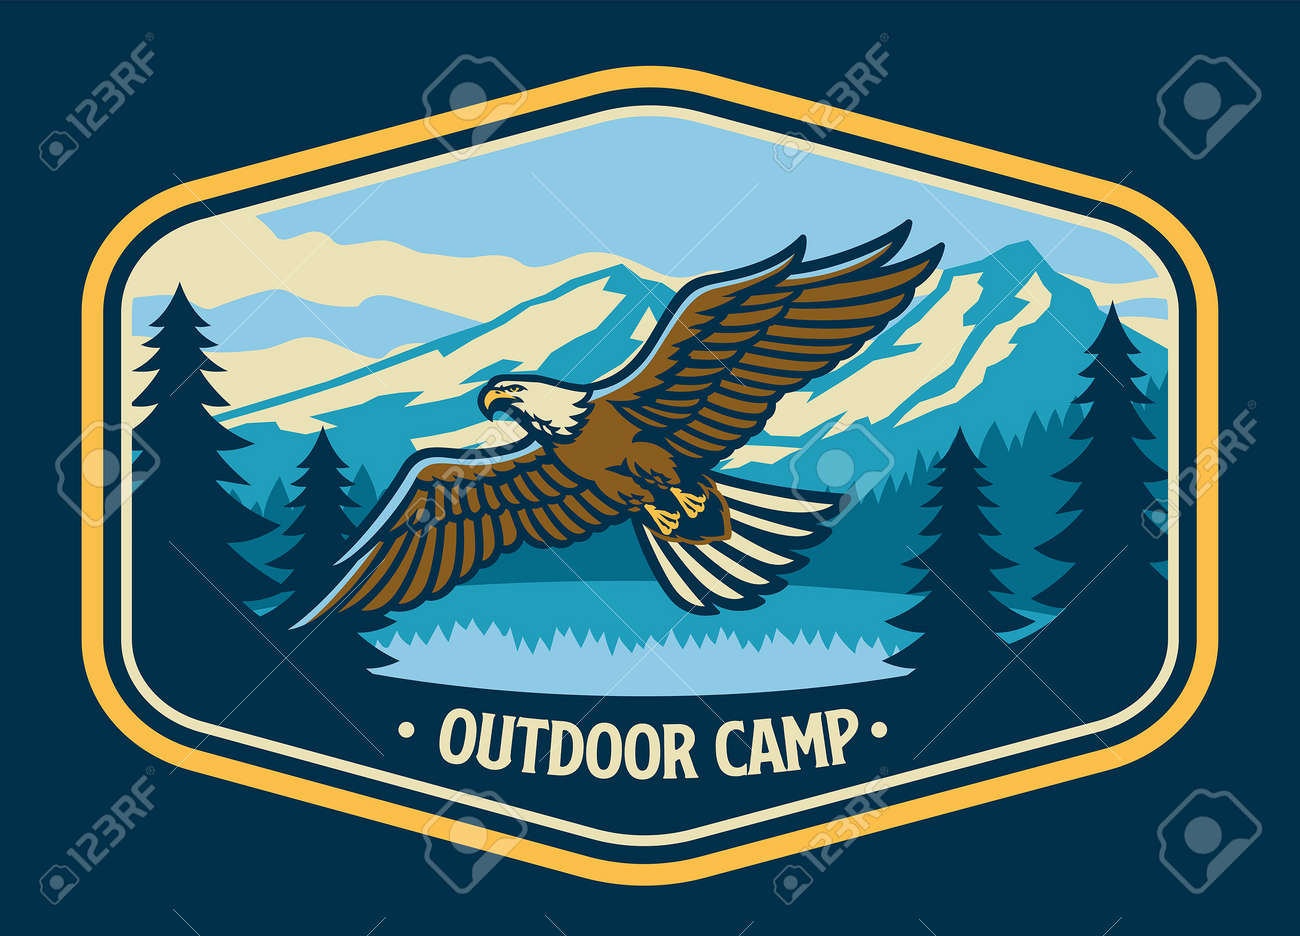 vector of vintage style outdoor logo with flying bald eagle - 171104011